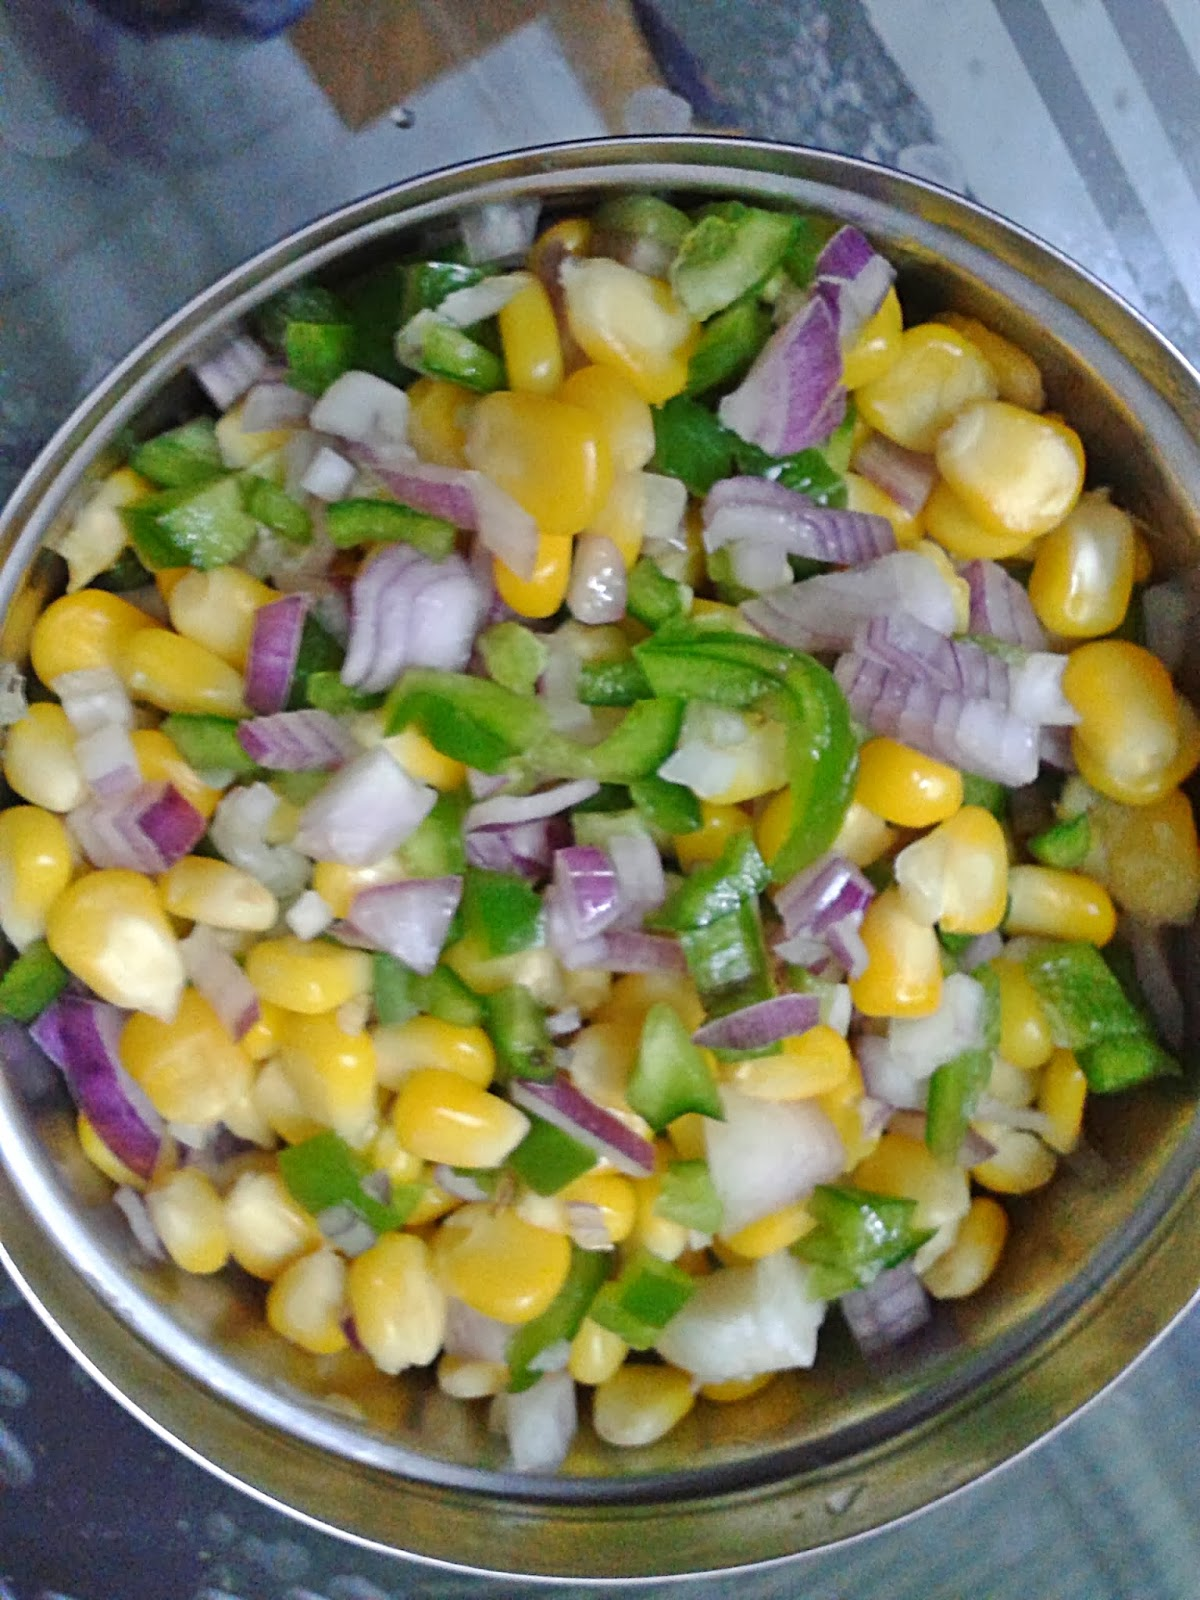 Chop all the vegetables and mix them in a mixing bowl.